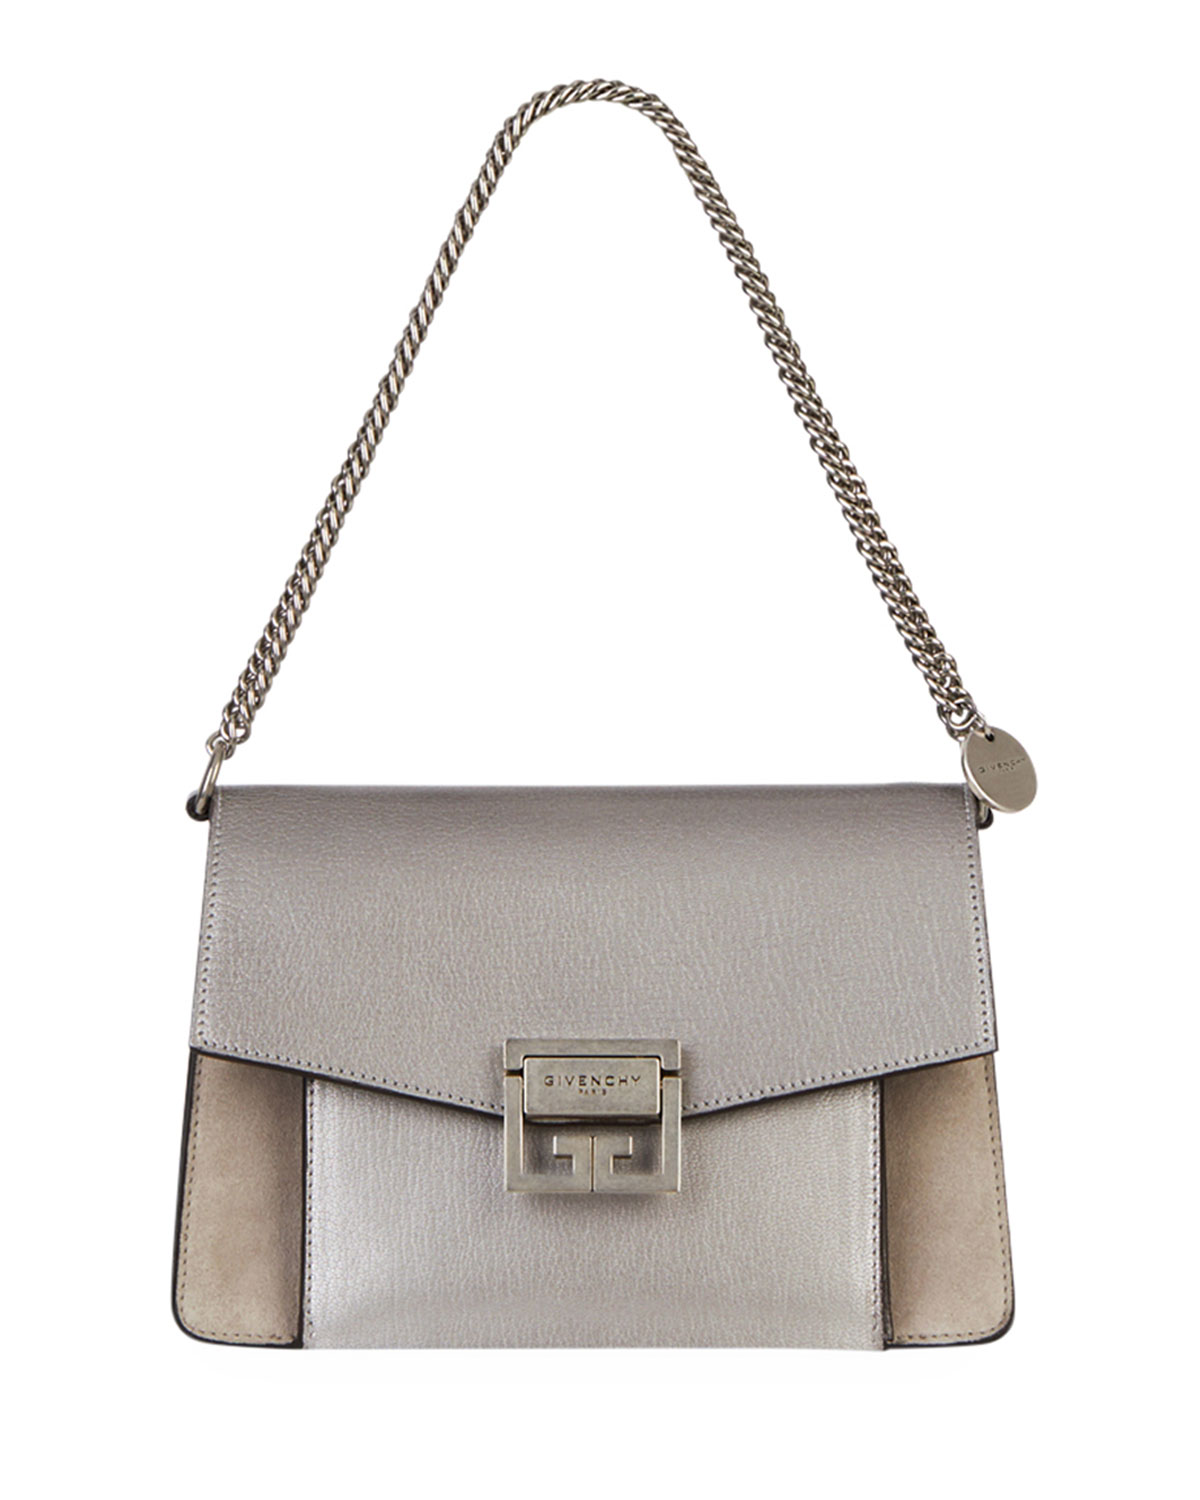 06d406d829a00 Givenchy GV3 Small Metallic Leather & Suede Shoulder Bag | Neiman Marcus